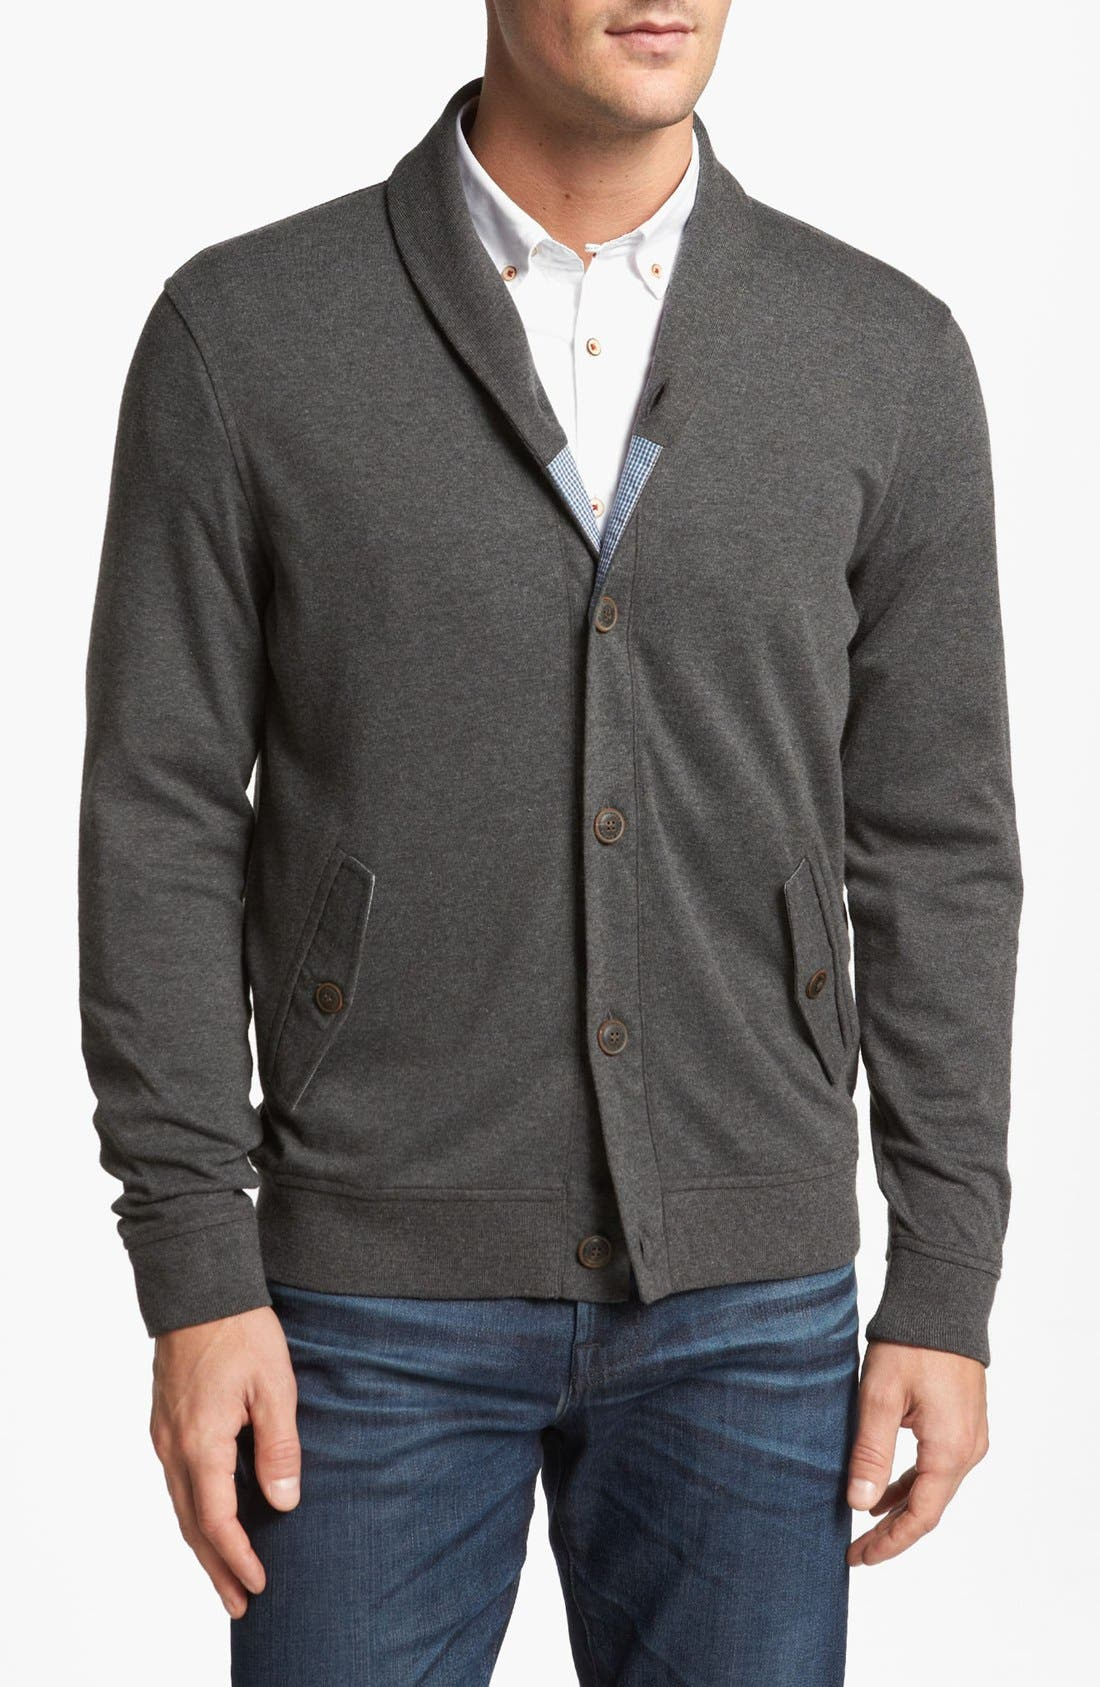 Main Image - Ted Baker London 'Norre' Shawl Collar Knit Jersey Cardigan